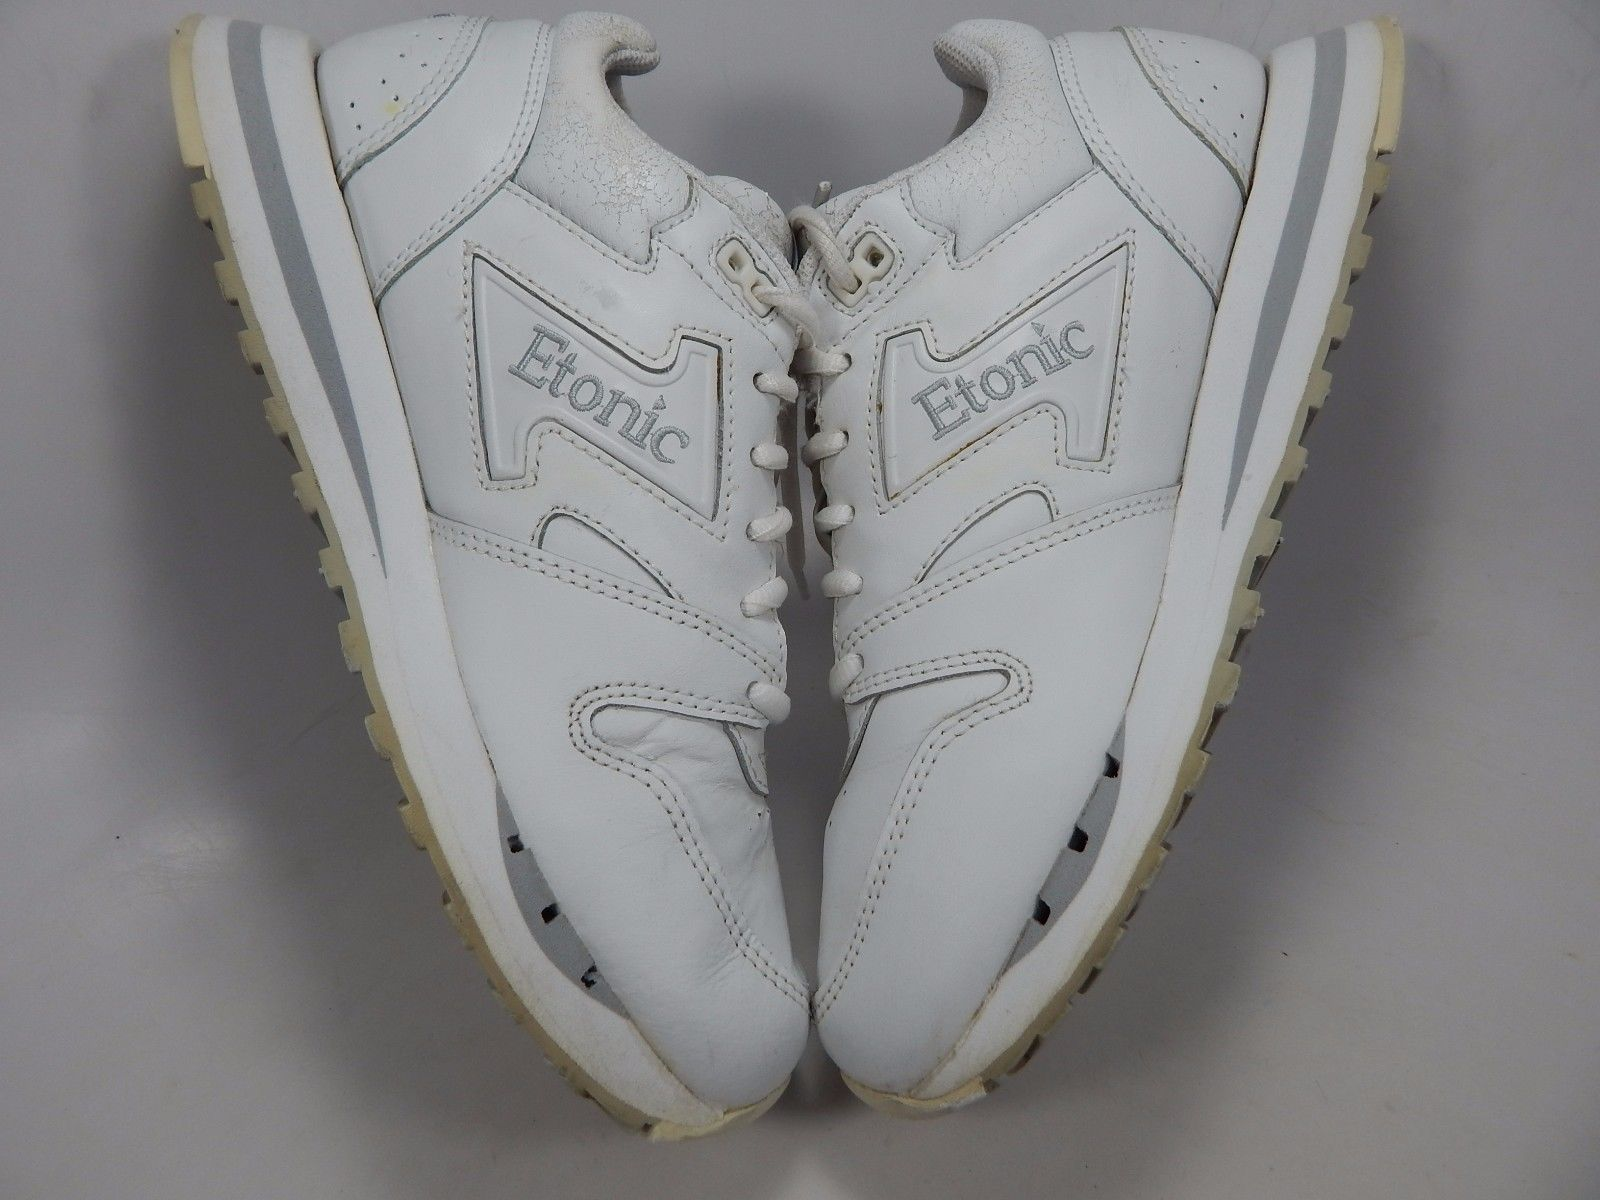 Etonic Trans Am Women's Trainer Shoes Size US 7 M (B) EU 38 White